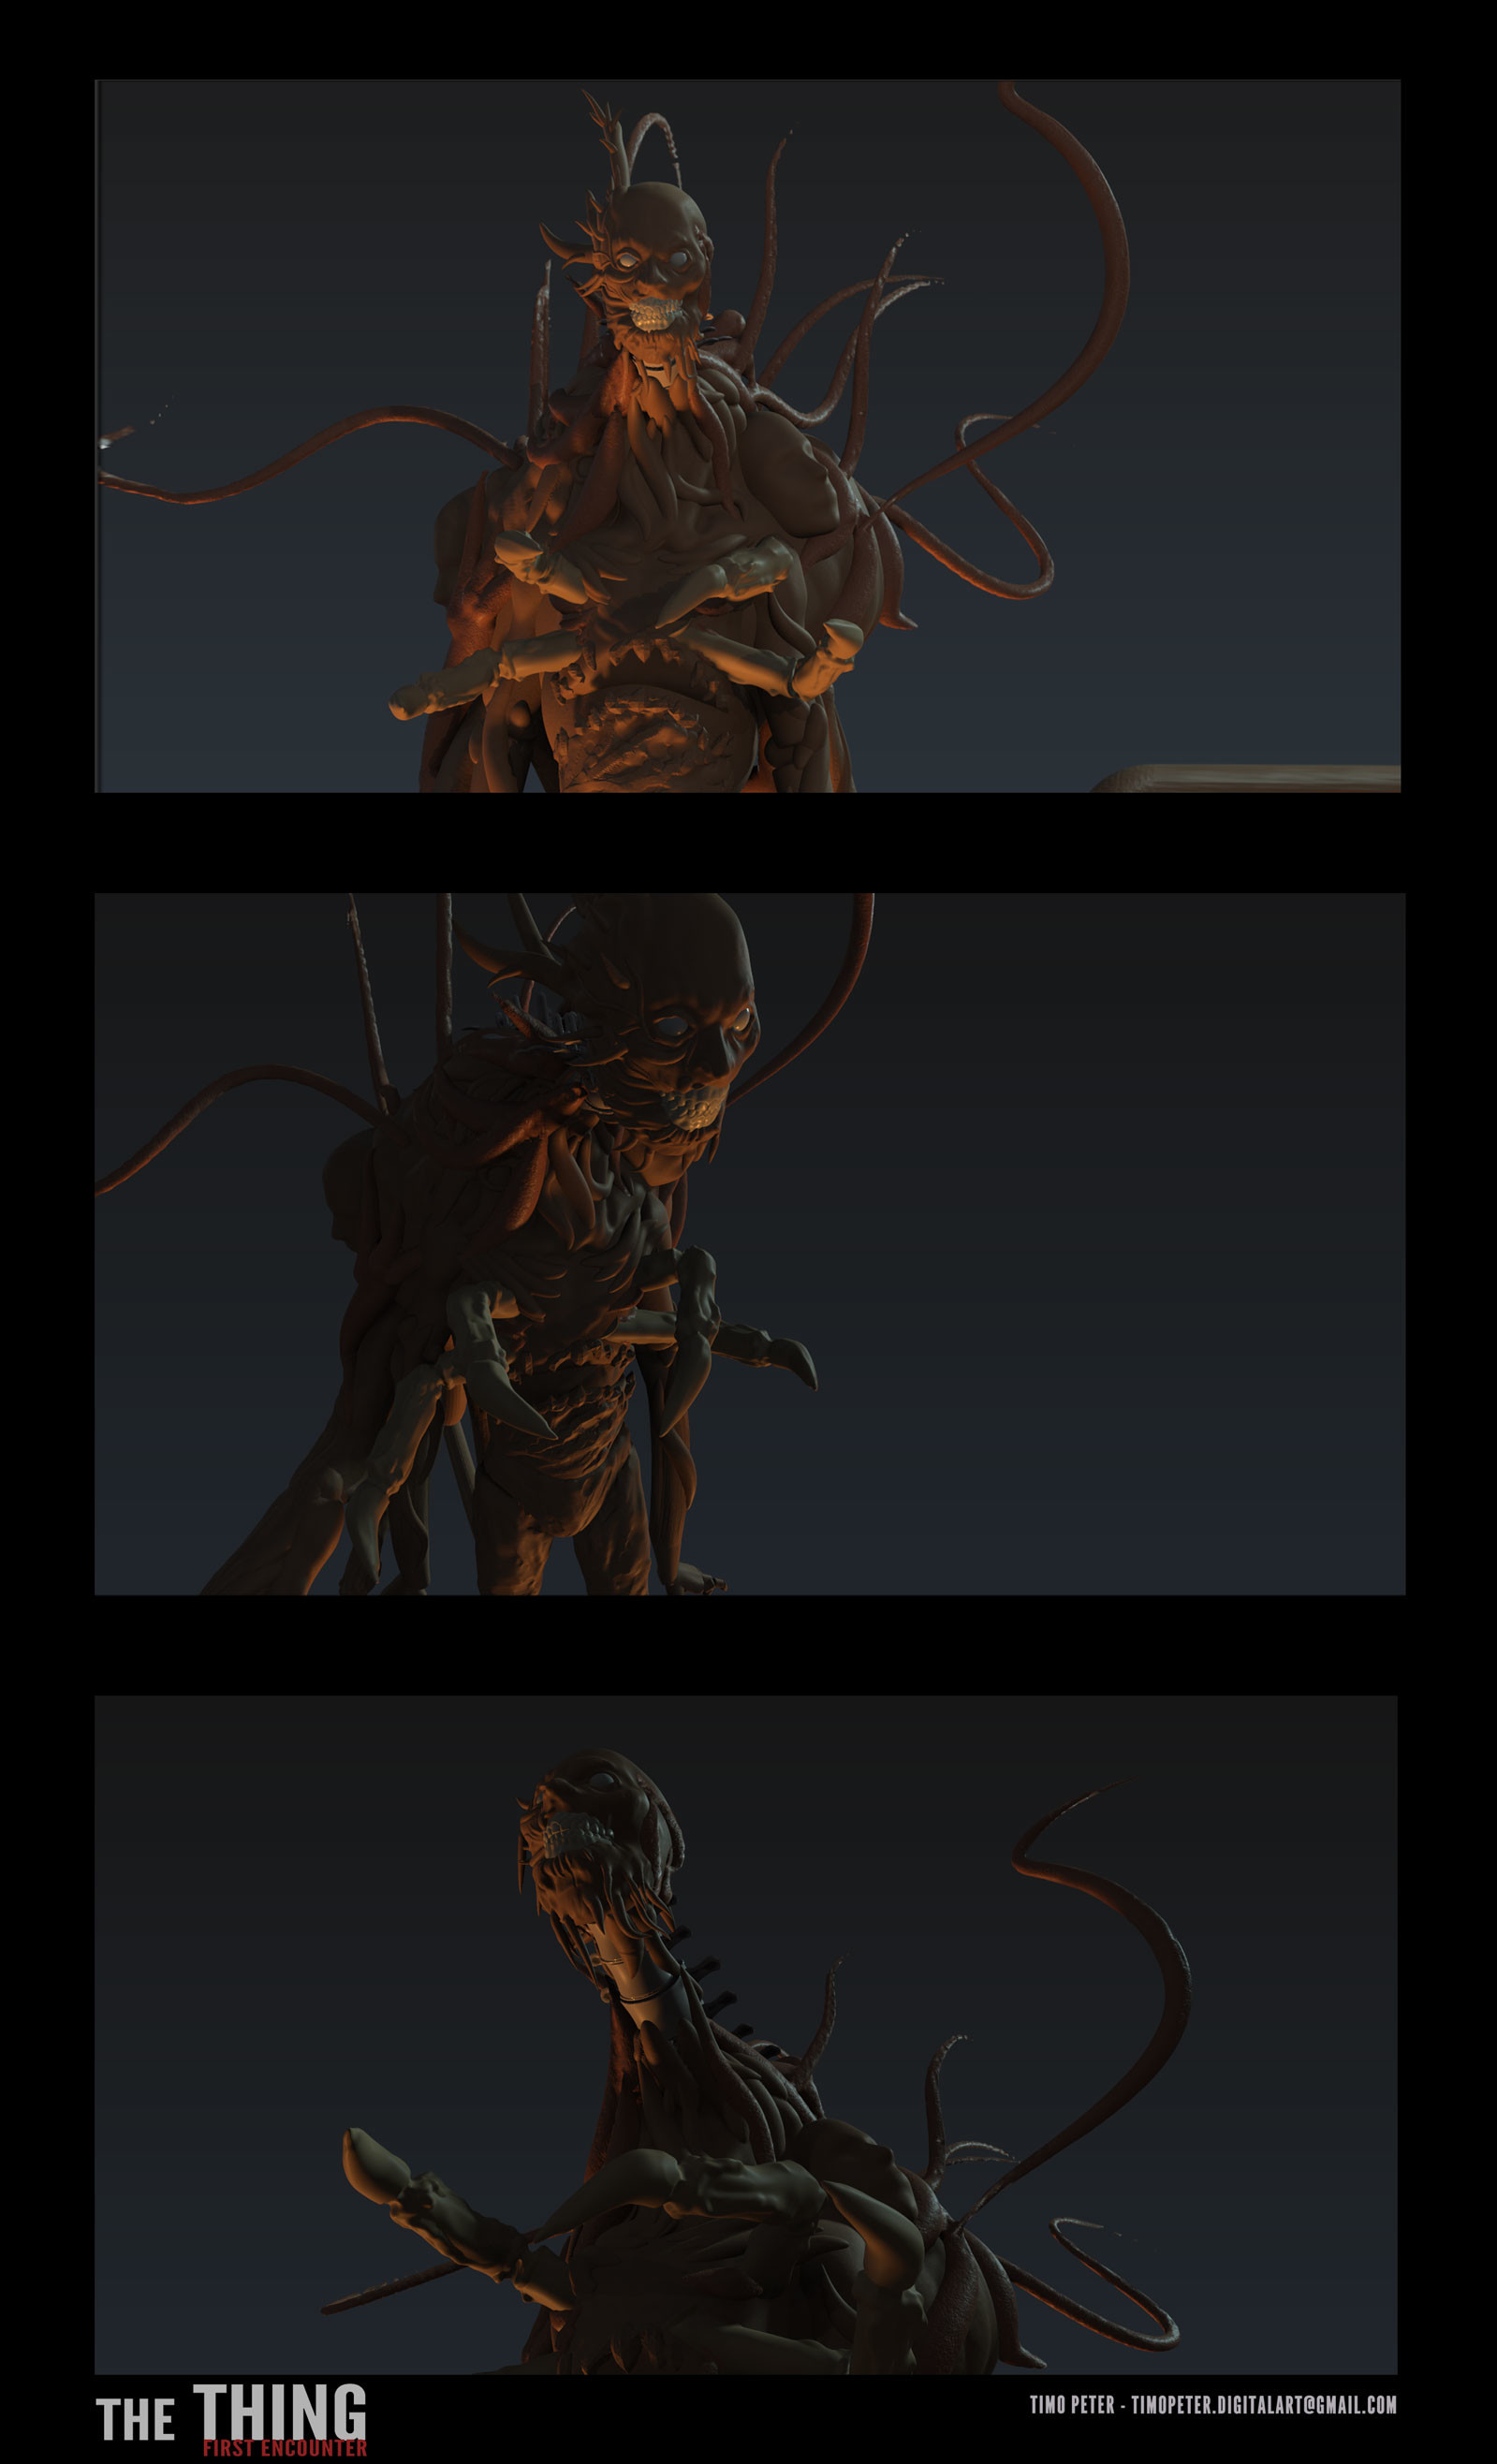 Timo peter creature render